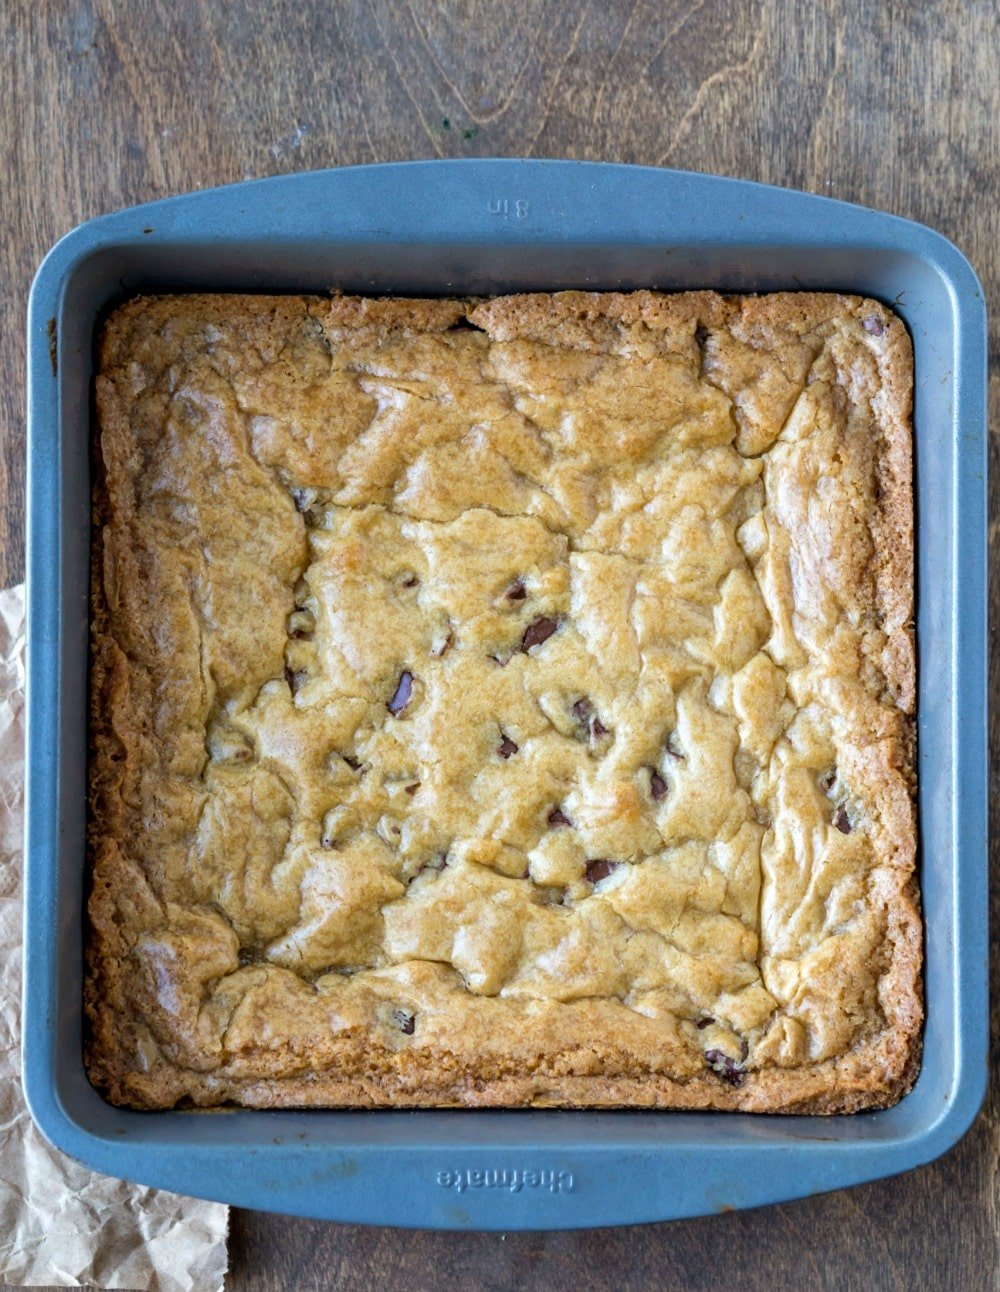 Baked chewy chocolate chip cookie bars in a pan